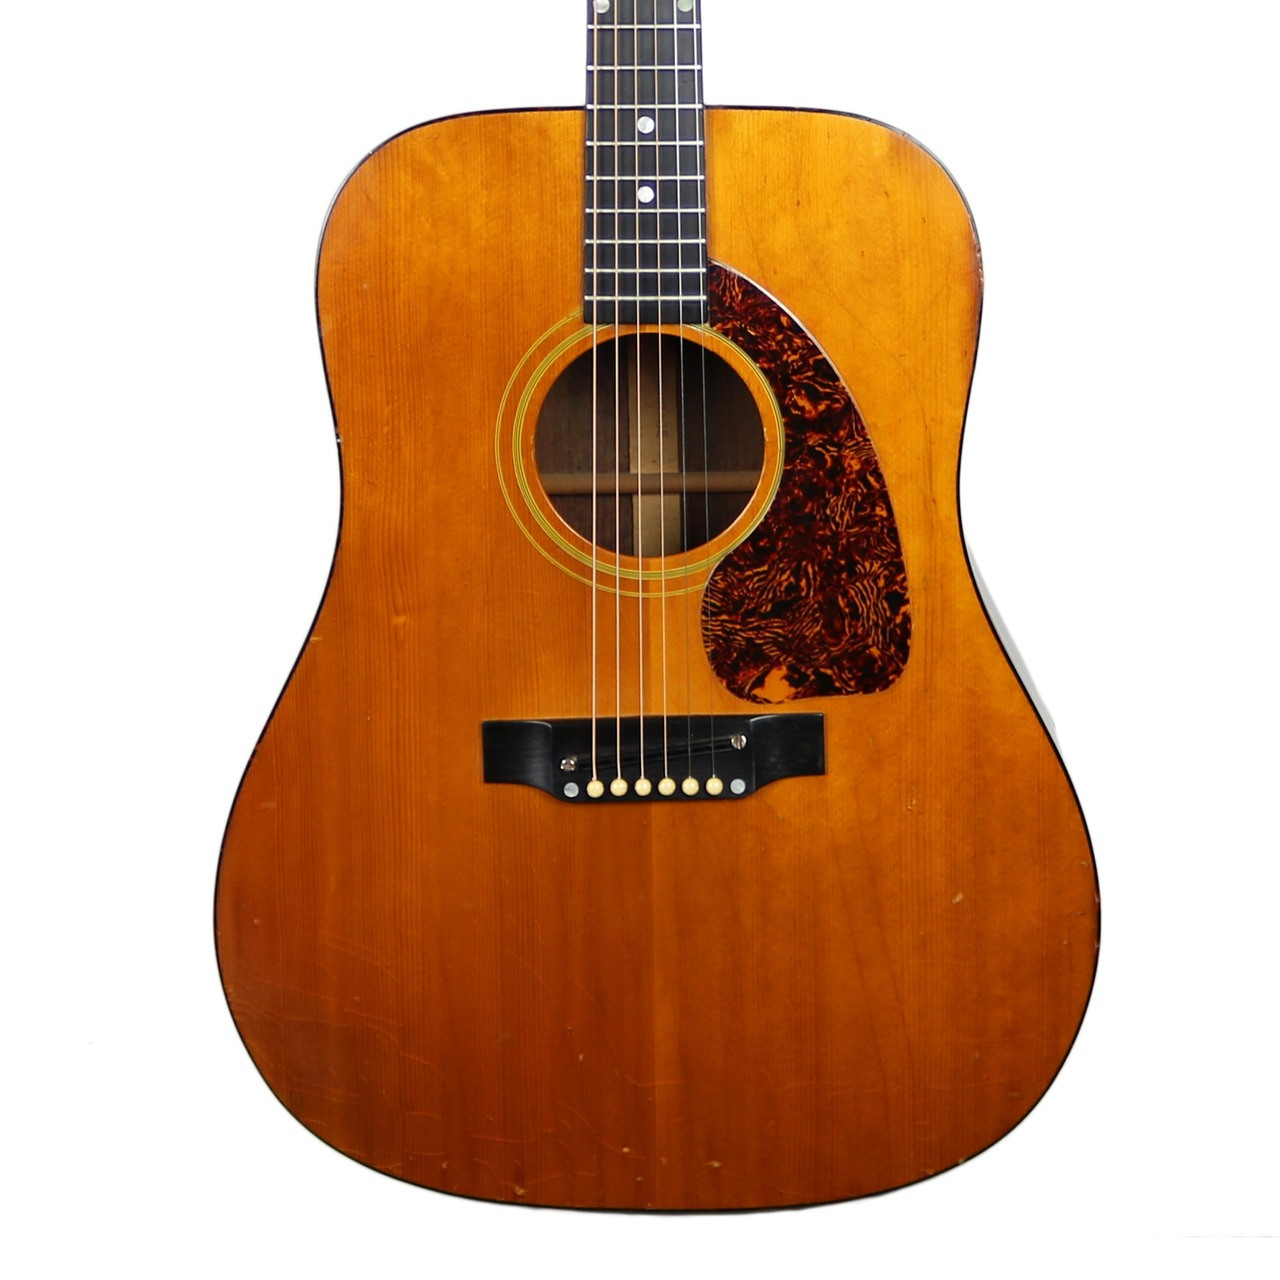 vintage 1965 gibson heritage dreadnought acoustic guitar natural finish cream city music. Black Bedroom Furniture Sets. Home Design Ideas